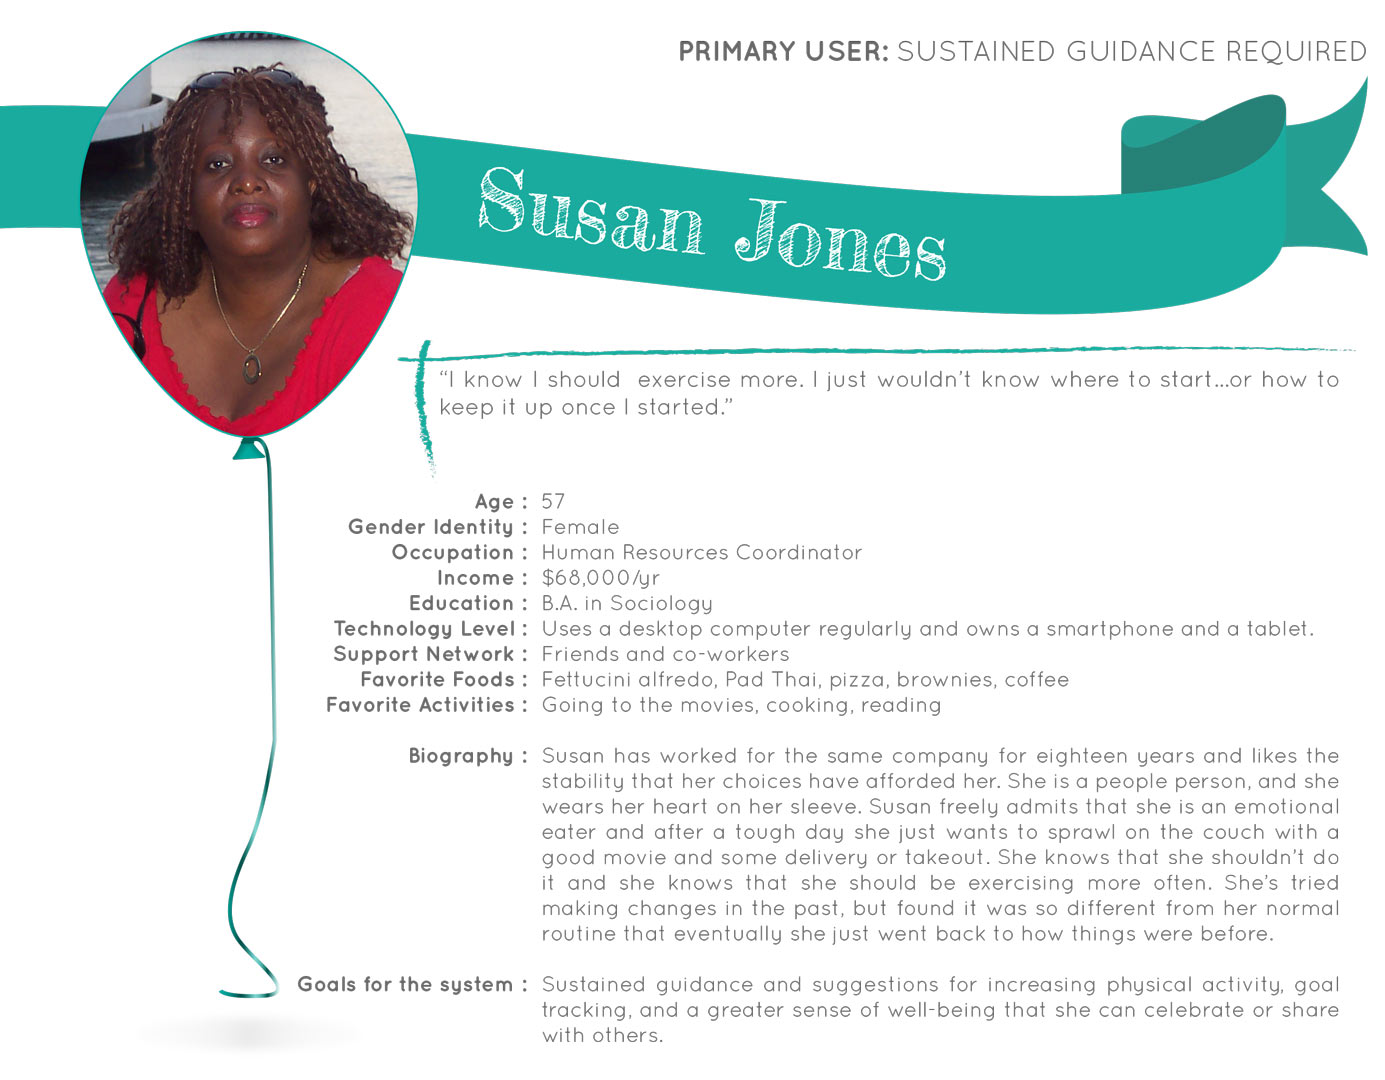 Primary persona: Susan Jones